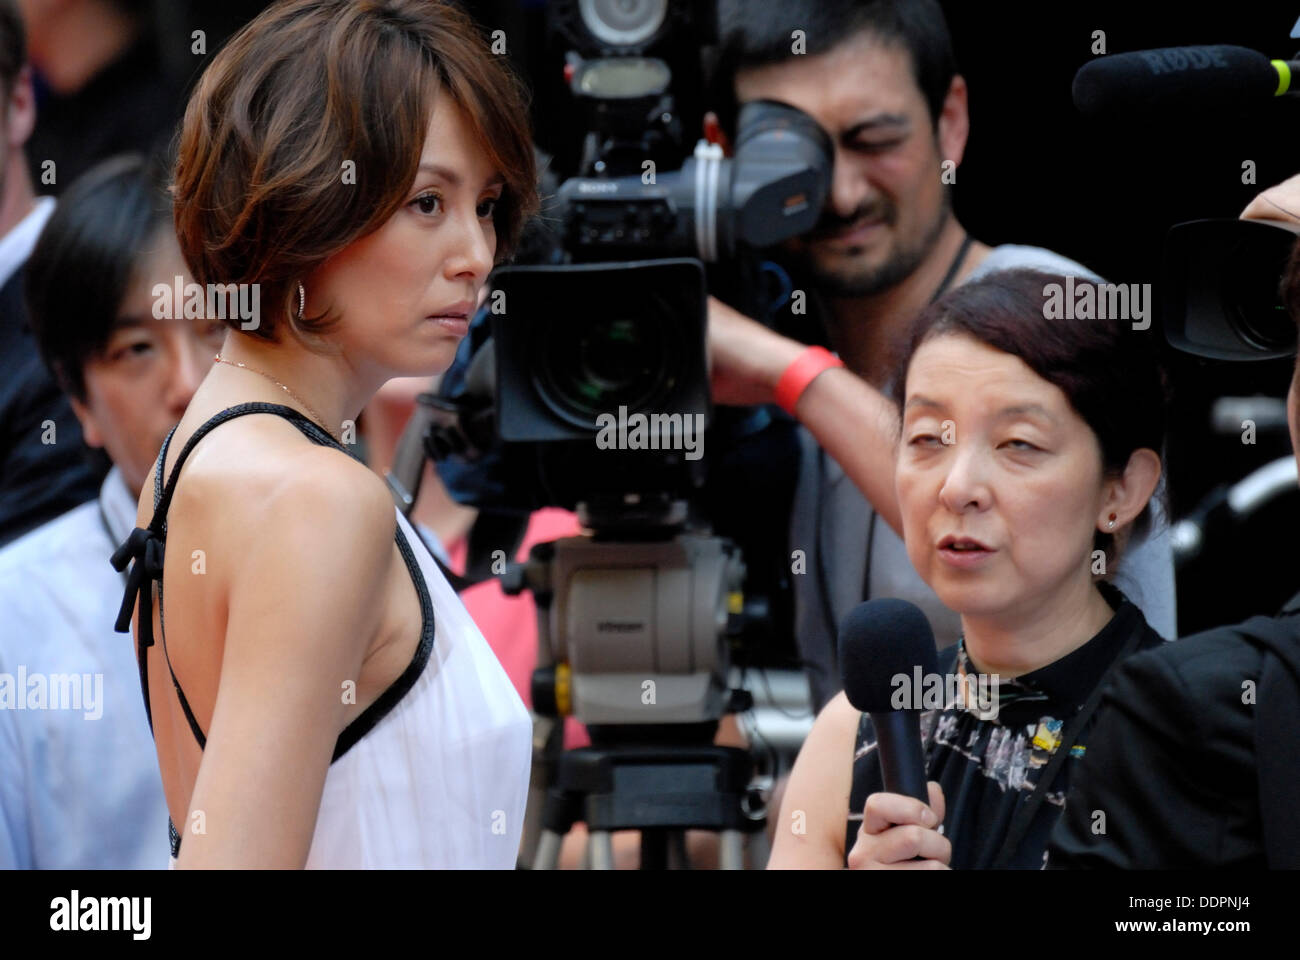 Leicester Square, London, UK. 05th Sep, 2013. 'Diana' World Premiere, Leicester Square, London, Sept 5th, 2013. Ryoko Yonekura (Japanese voice over for Diana) - Stock Image